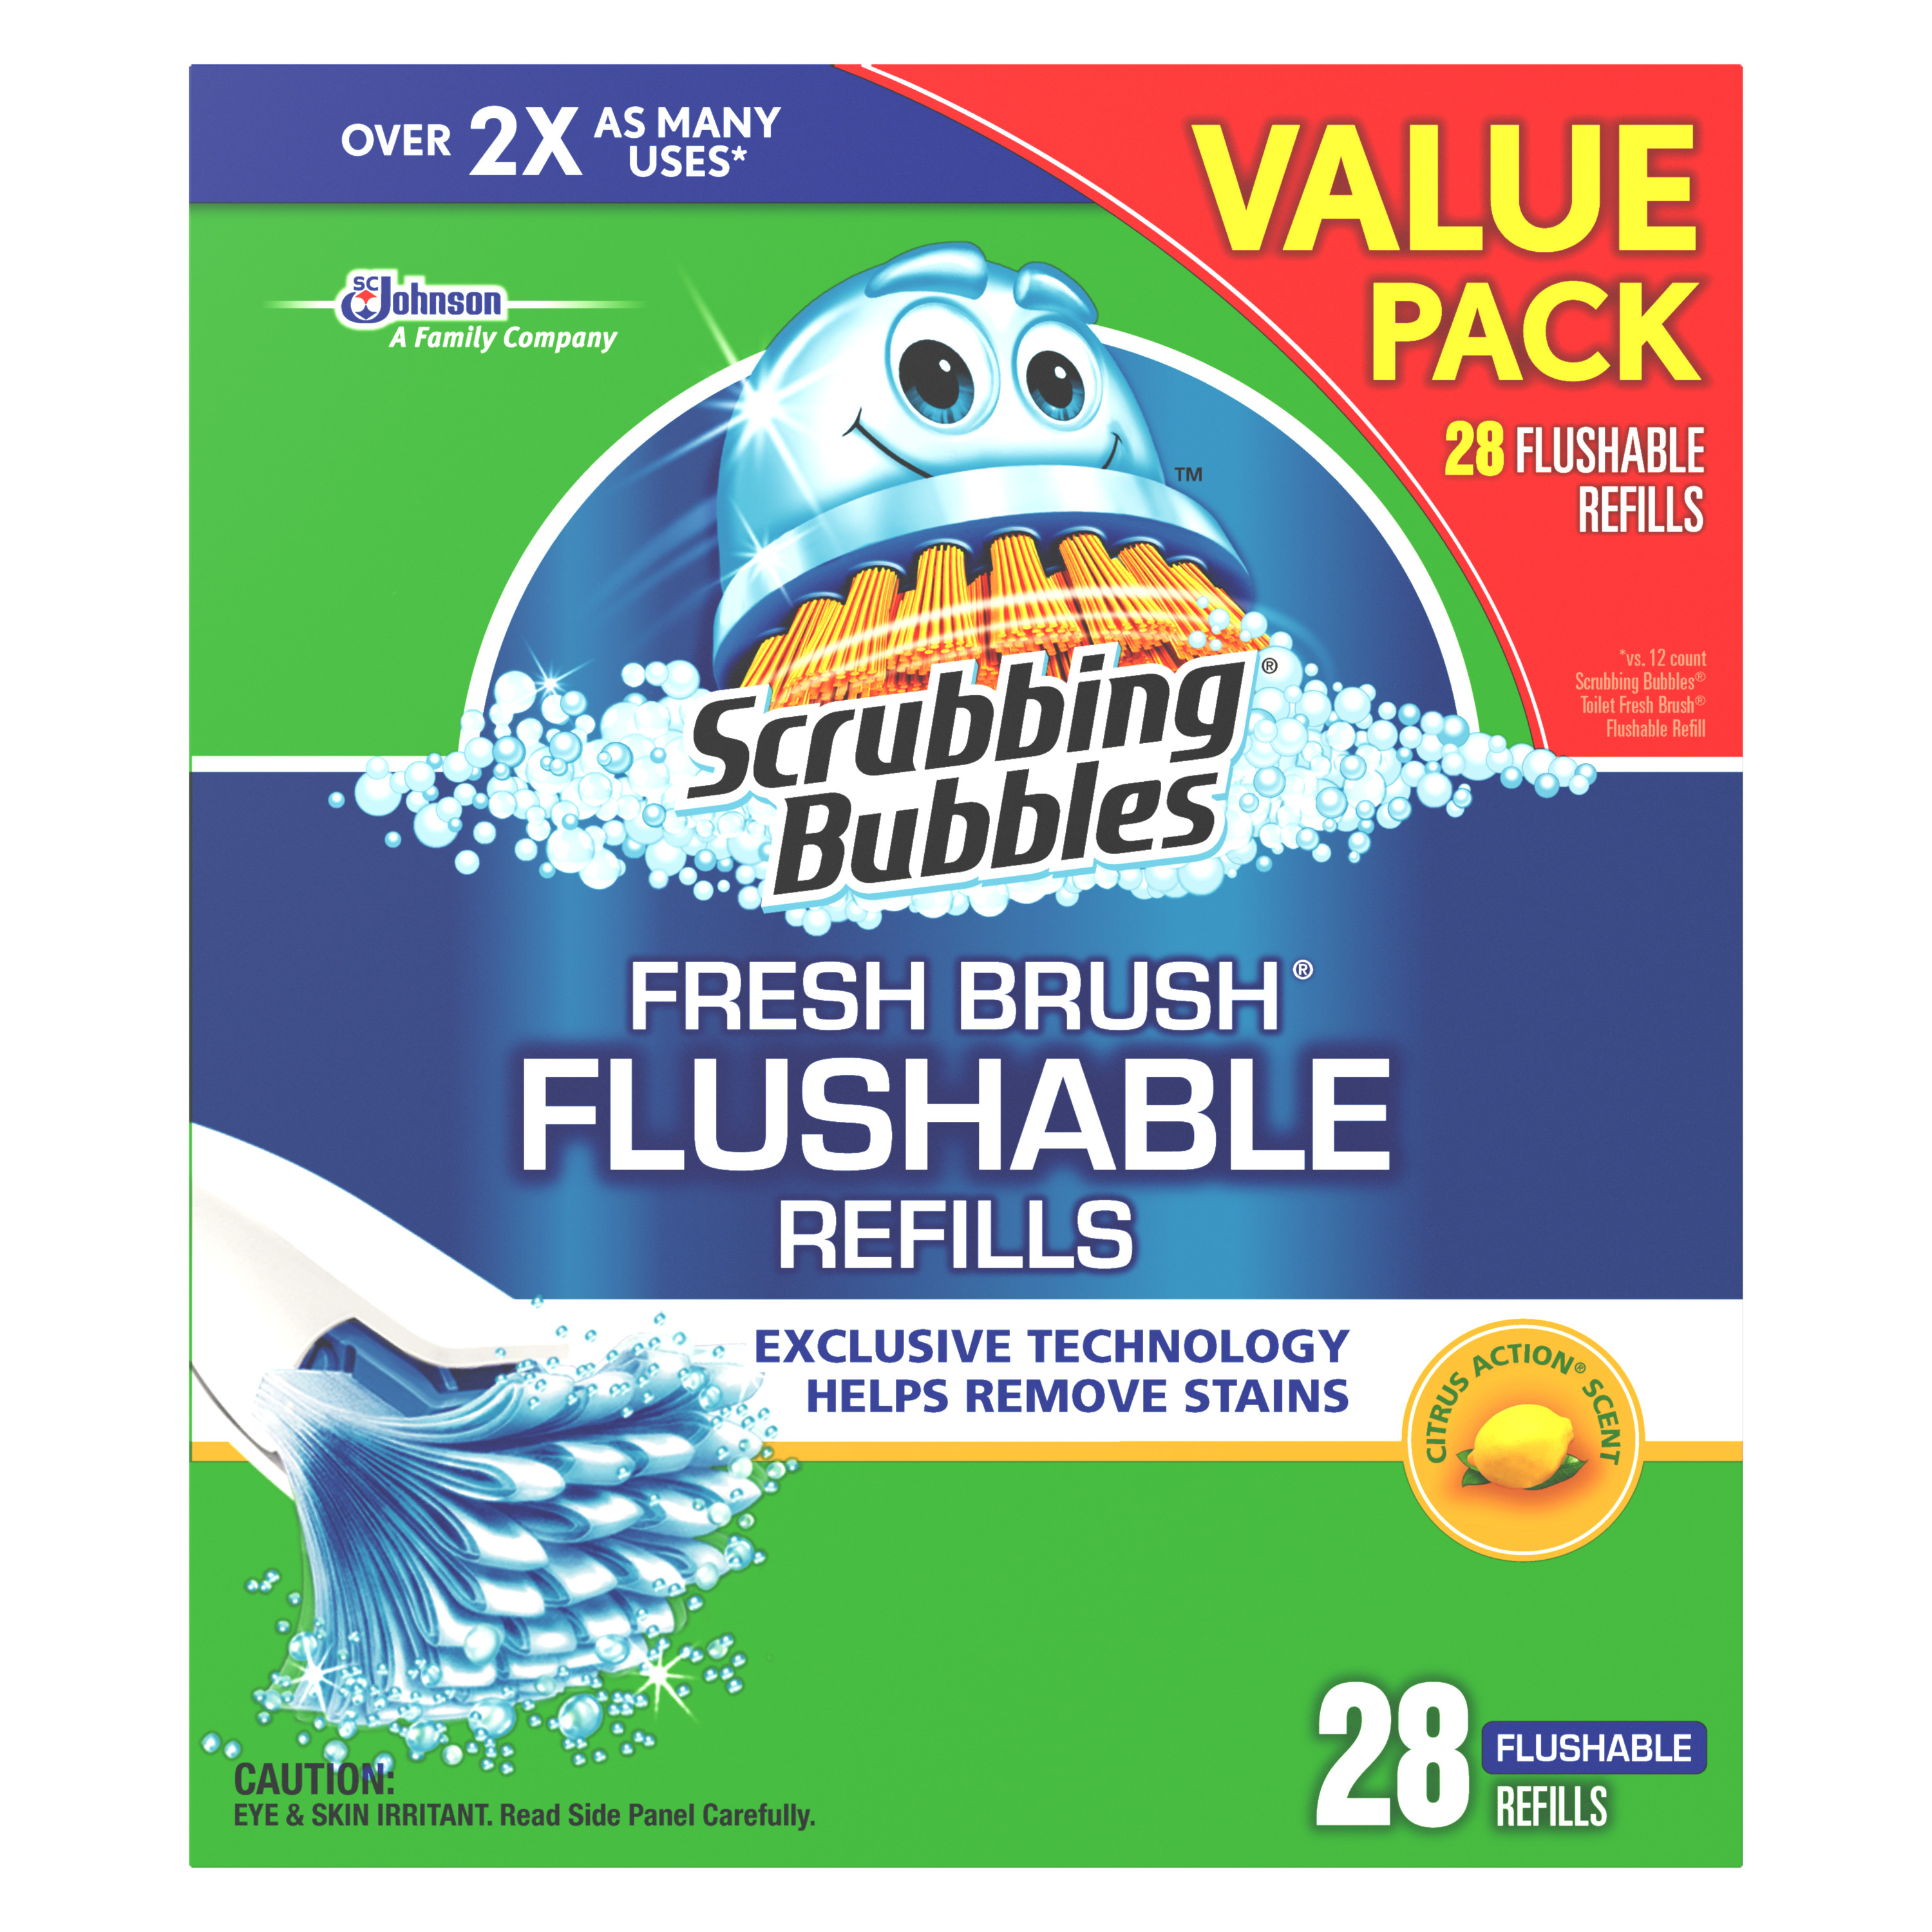 Scrubbing Bubbles Fresh Brush Flushable Refills 28 count